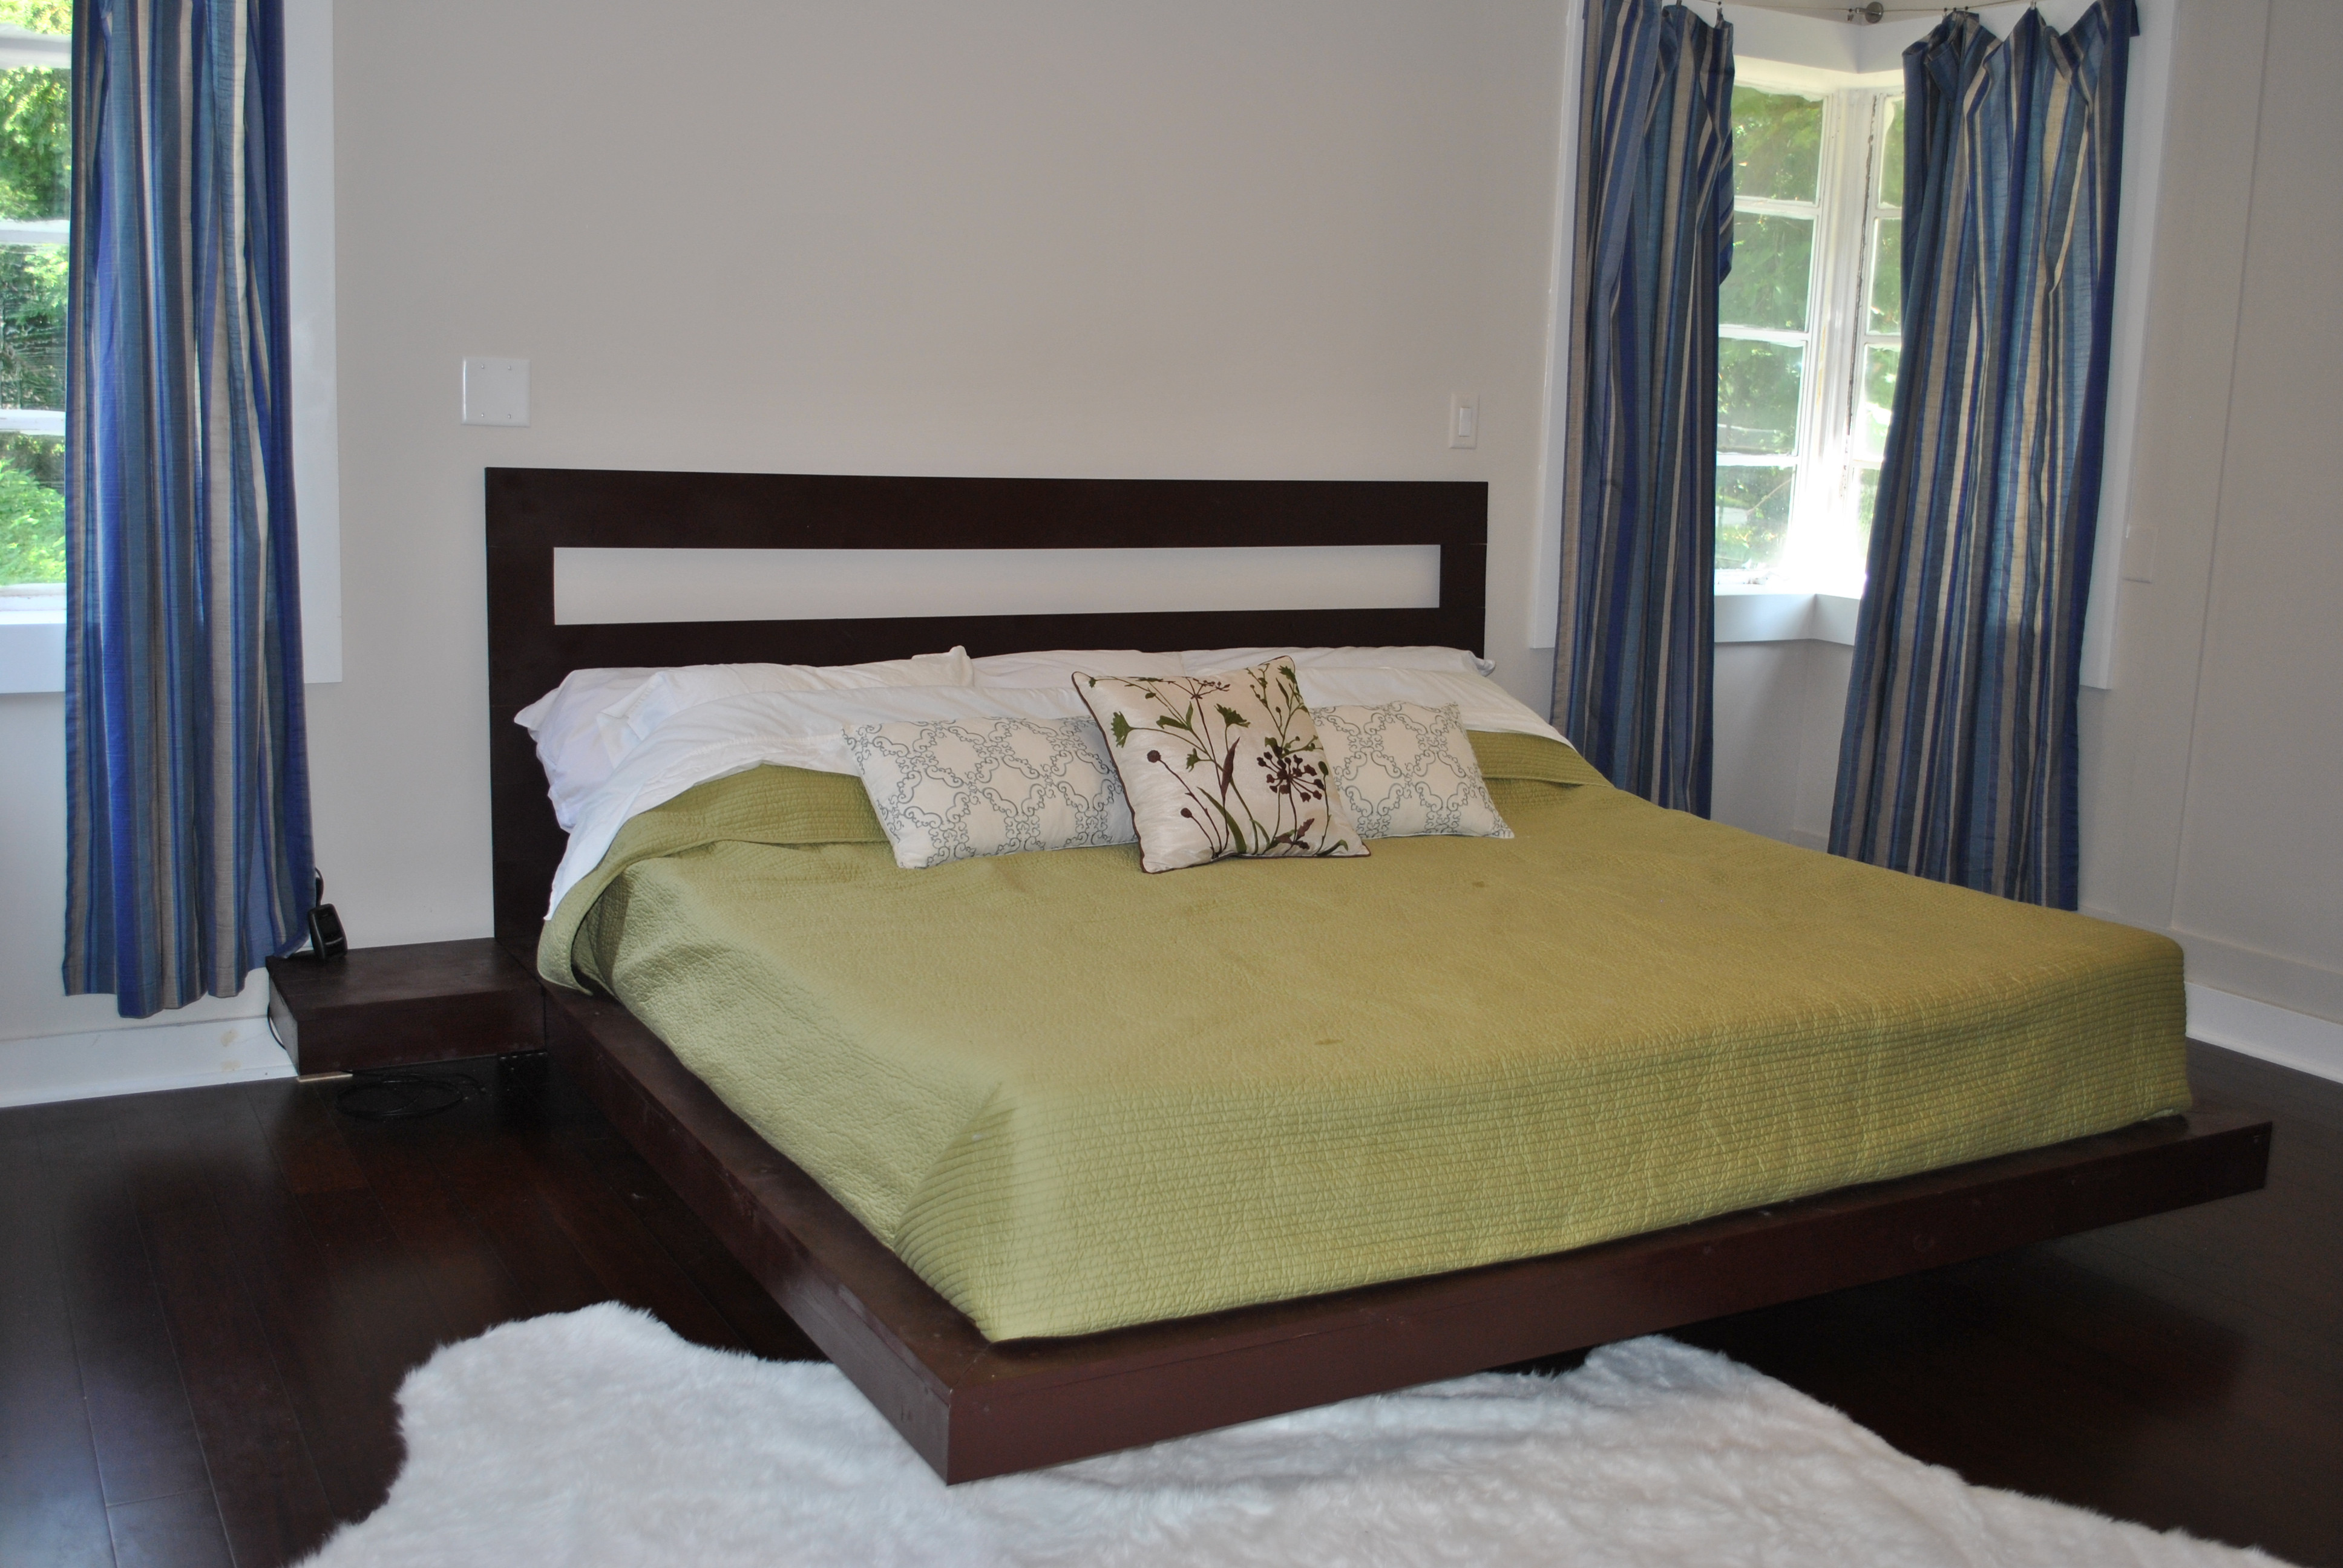 Best ideas about Bed Frame DIY . Save or Pin Project $26 King Bed Frame Now.